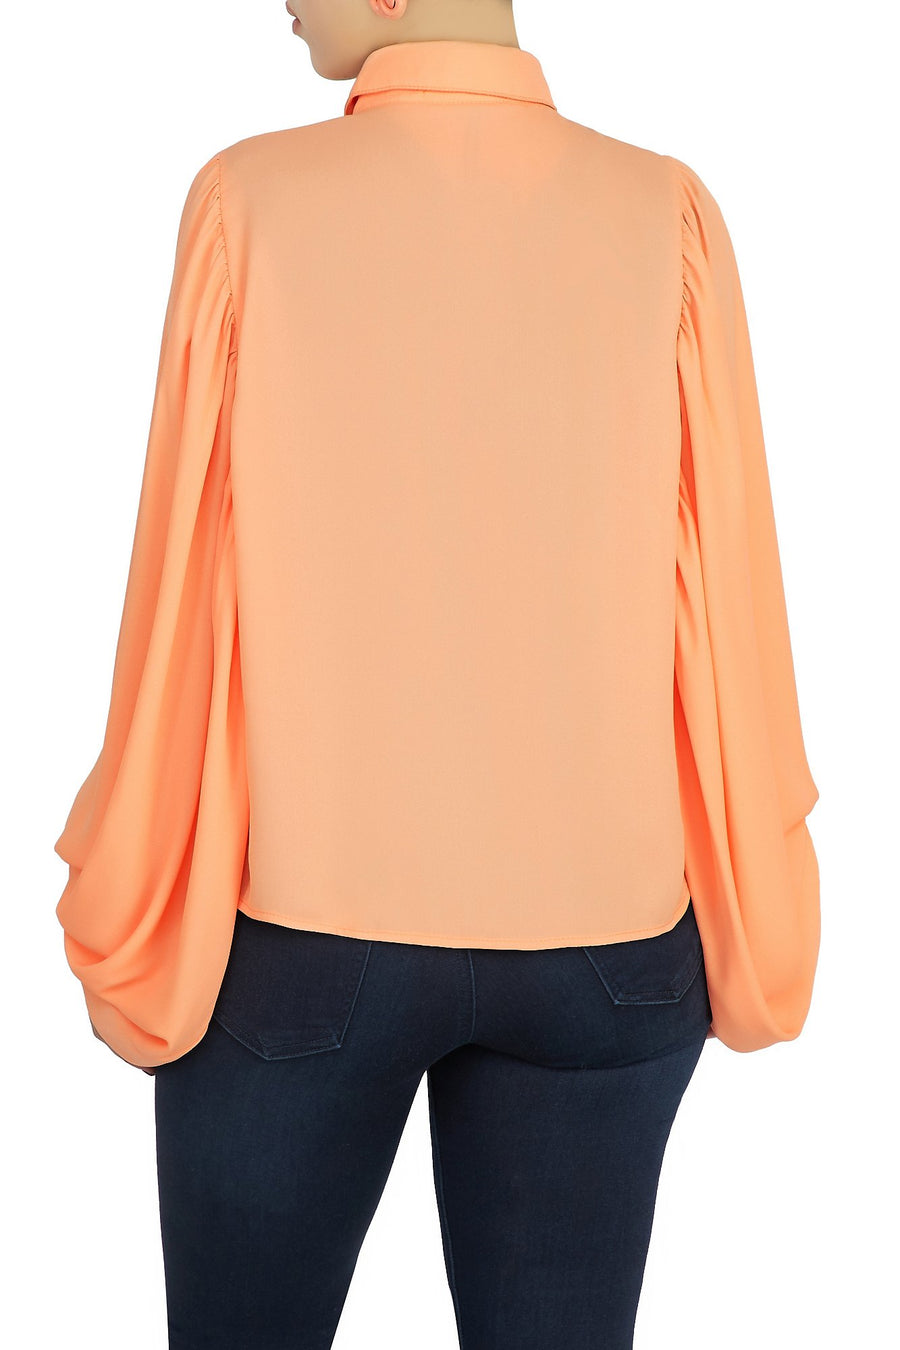 Wide Load Top (Coral)